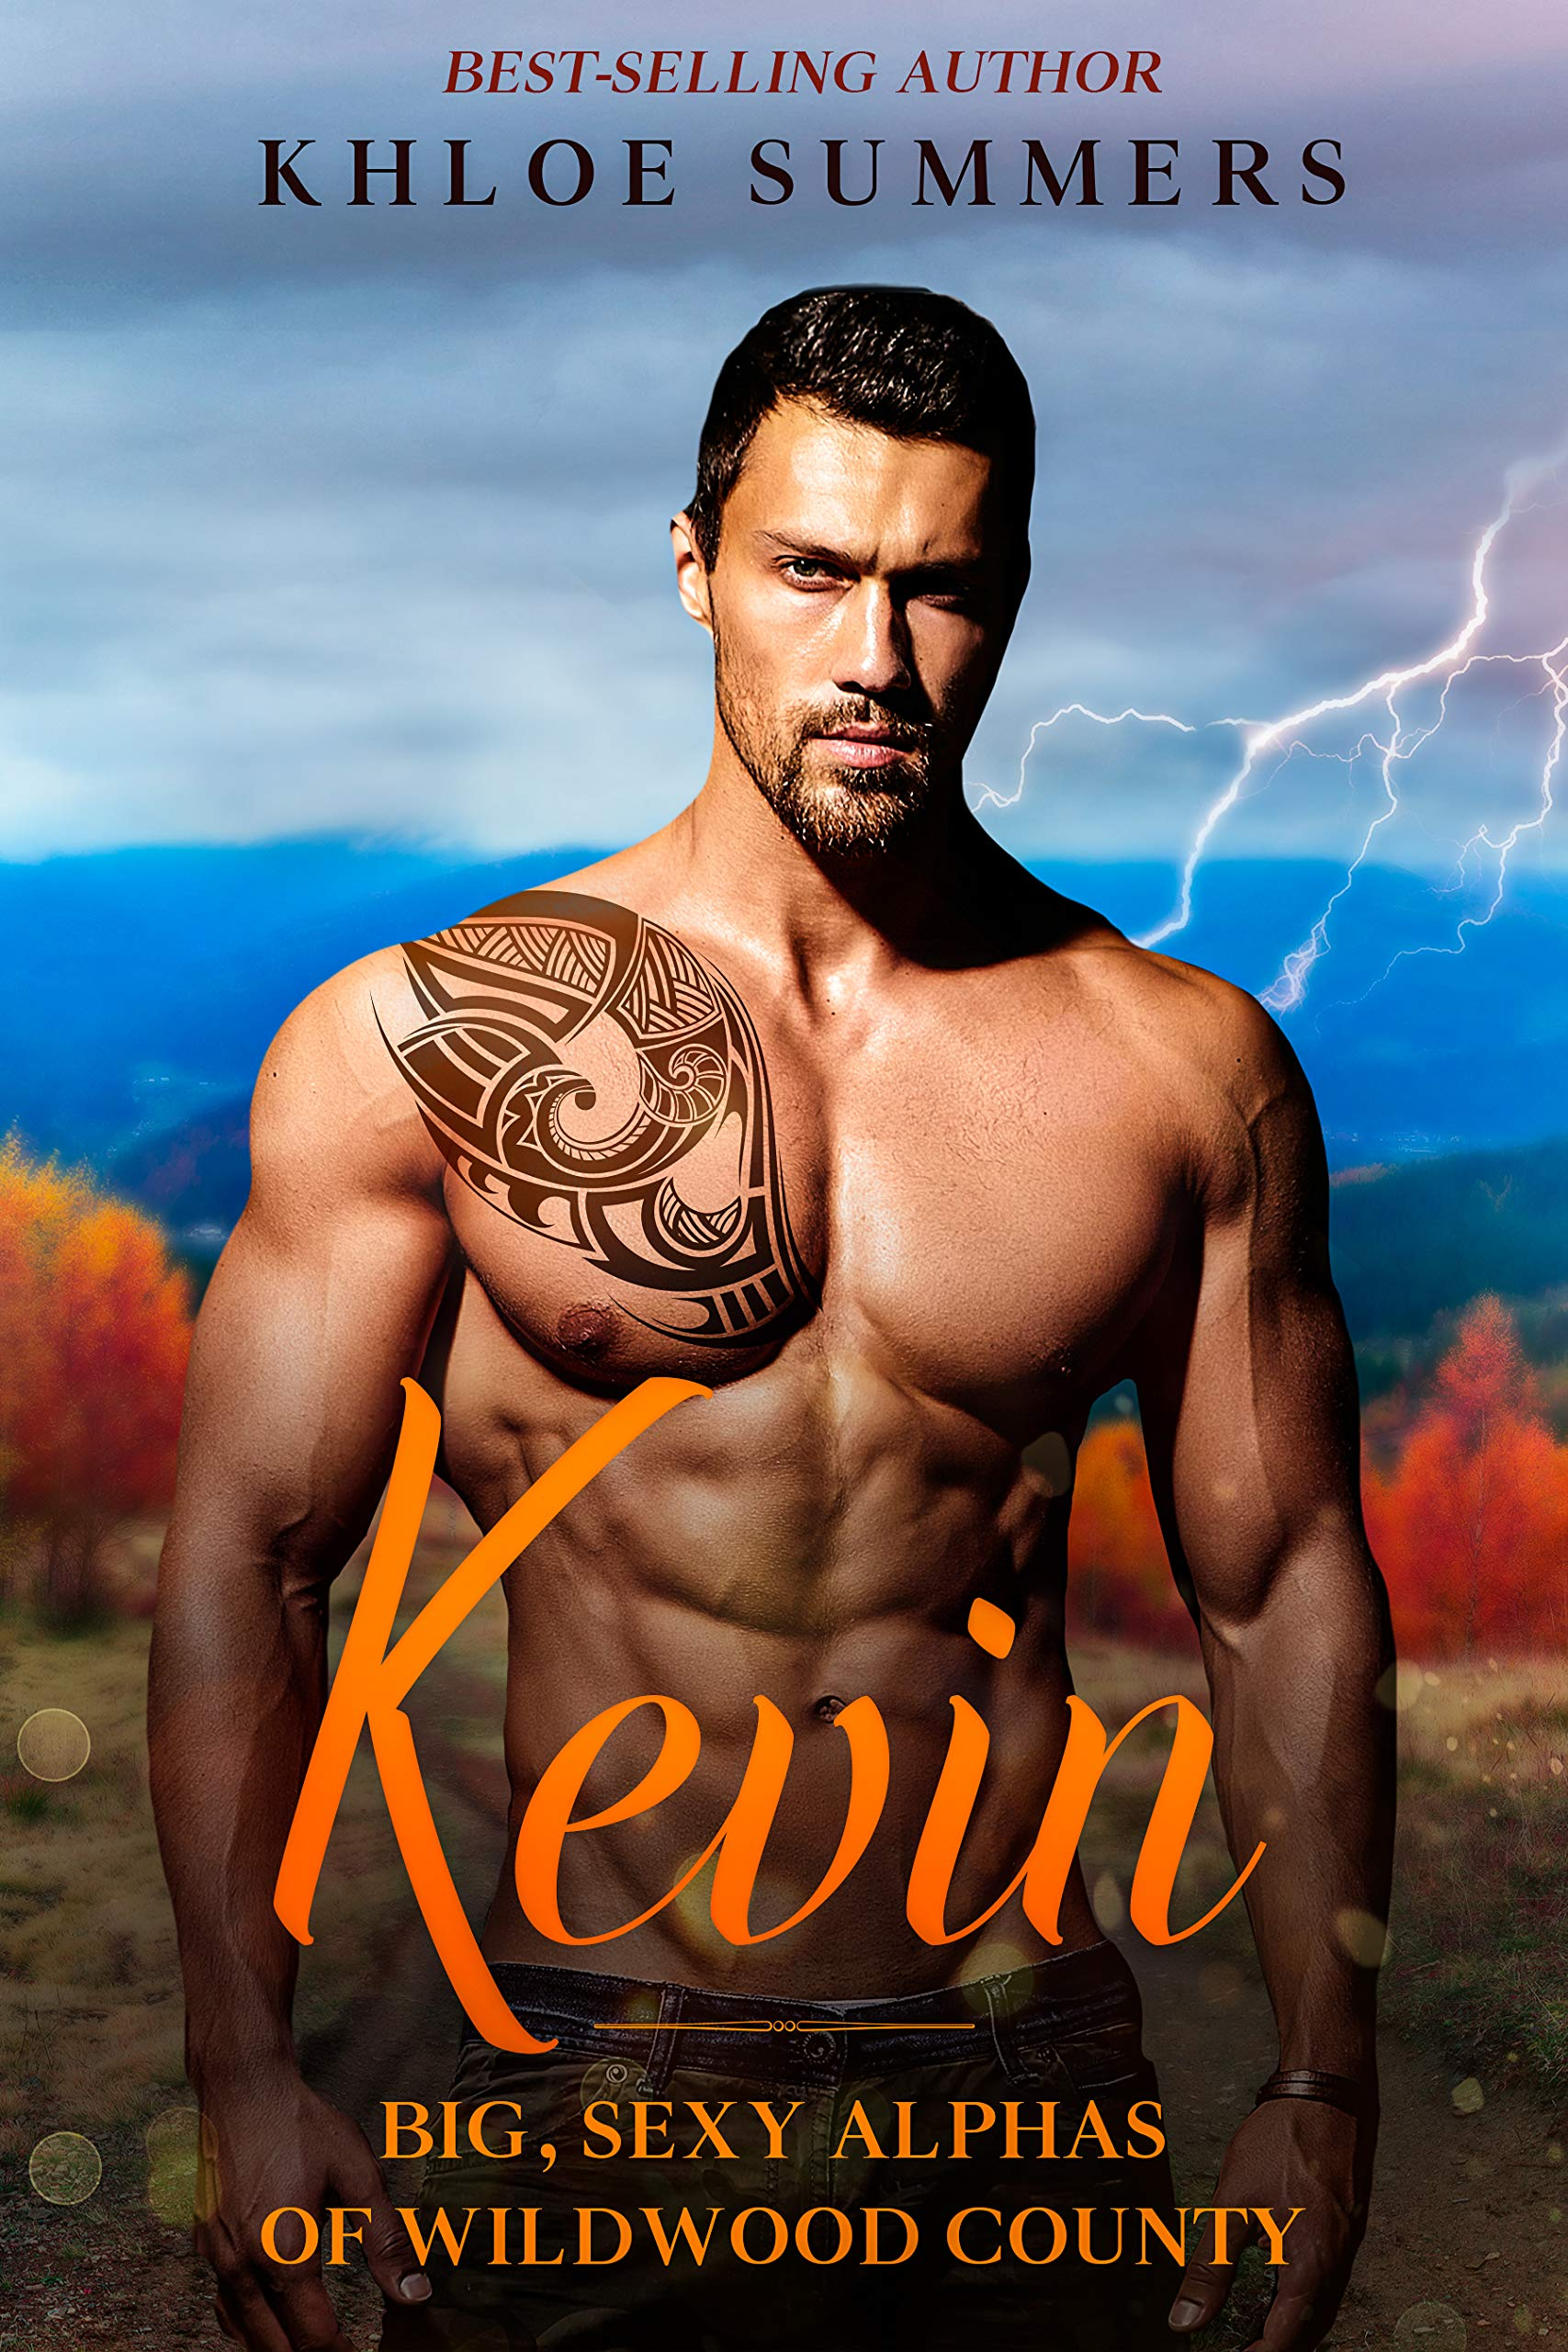 Kevin: Big, Sexy, Alphas of Wildwood County: